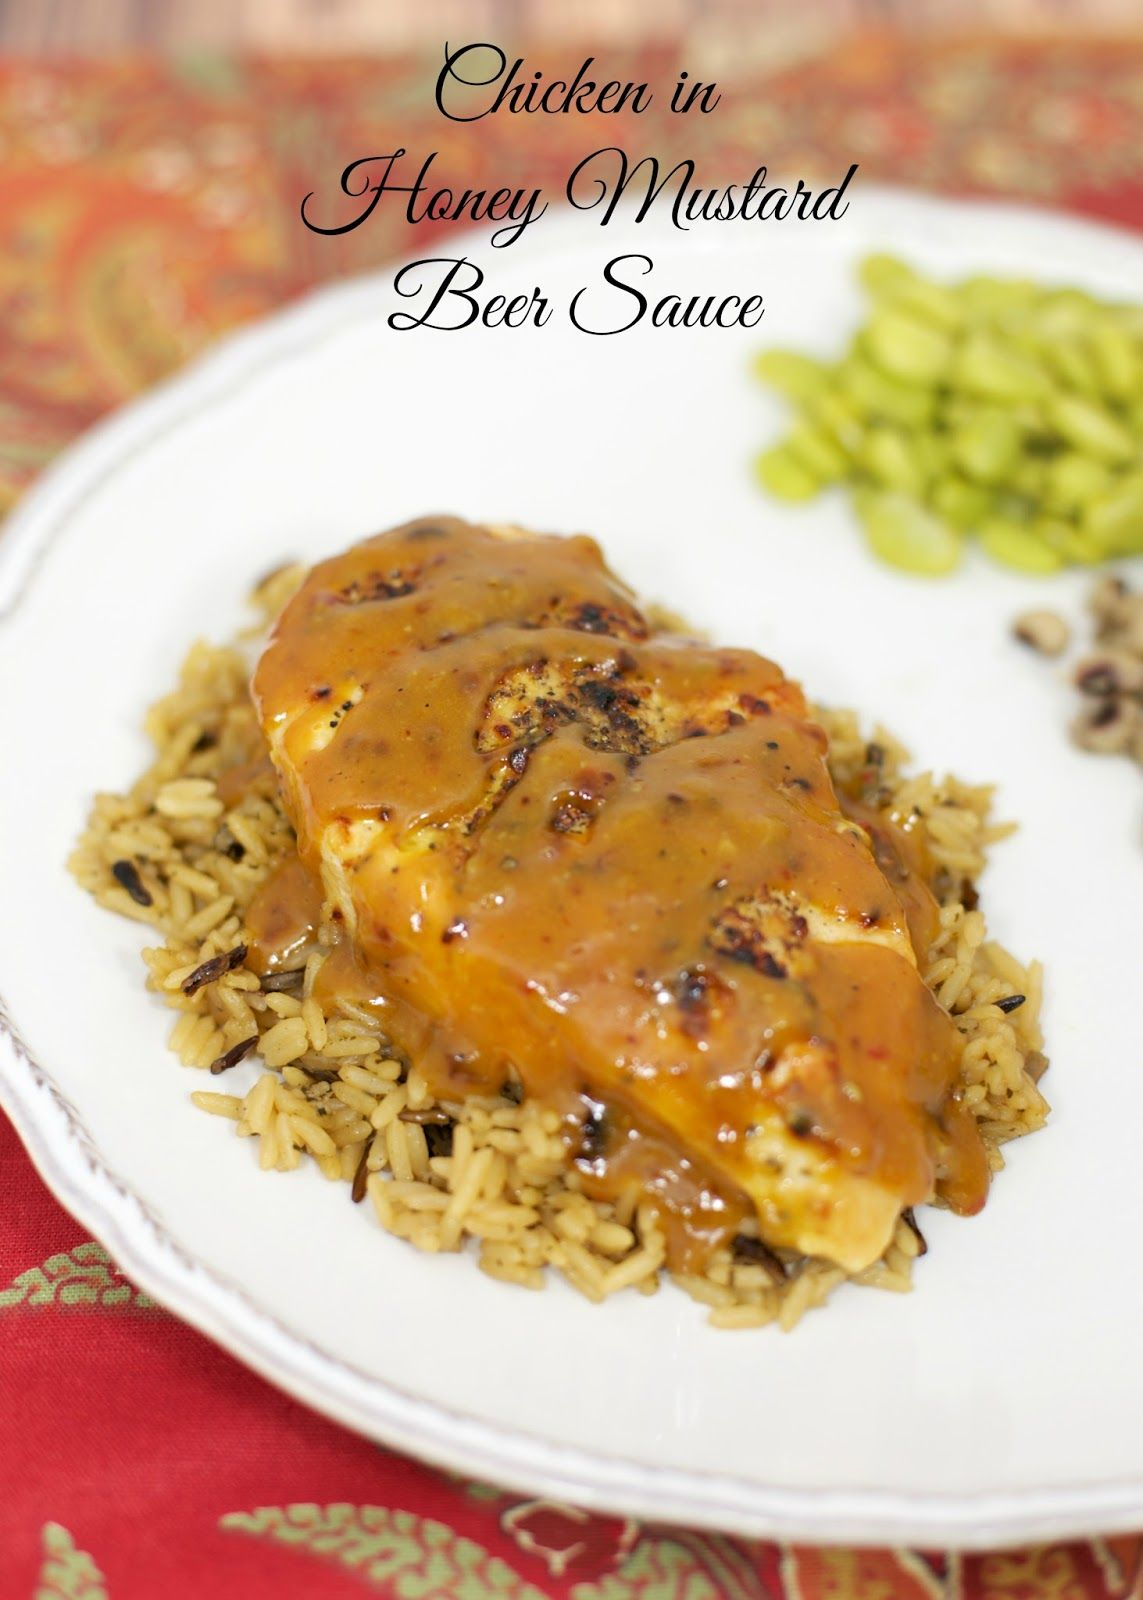 Chicken in Honey Mustard Beer Sauce - pan seared chicken simmered in a honey mustard beer sauce - ready in under 30 minutes! No-prep! Serve chicken over rice and spoon extra sauce on top.